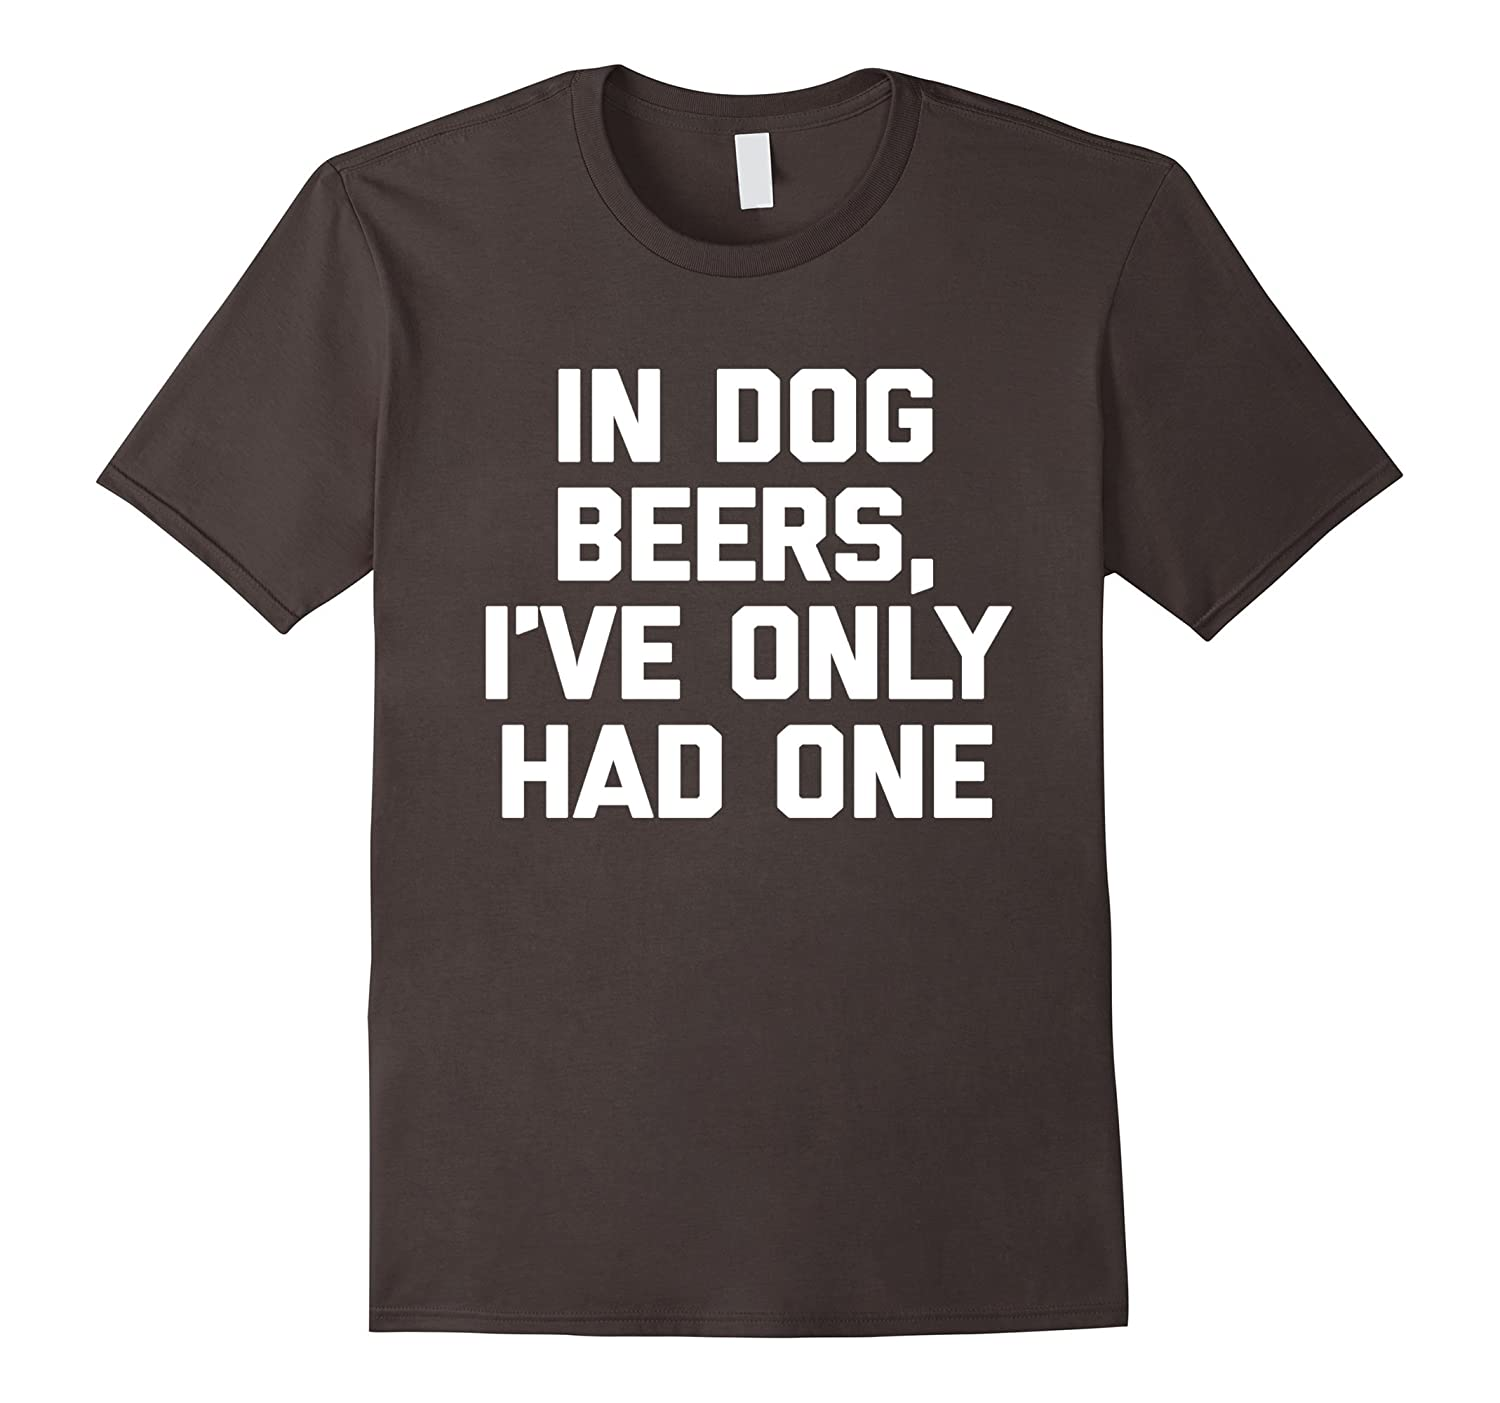 In Dog Beers, I've Only Had One T-Shirt funny saying novelty